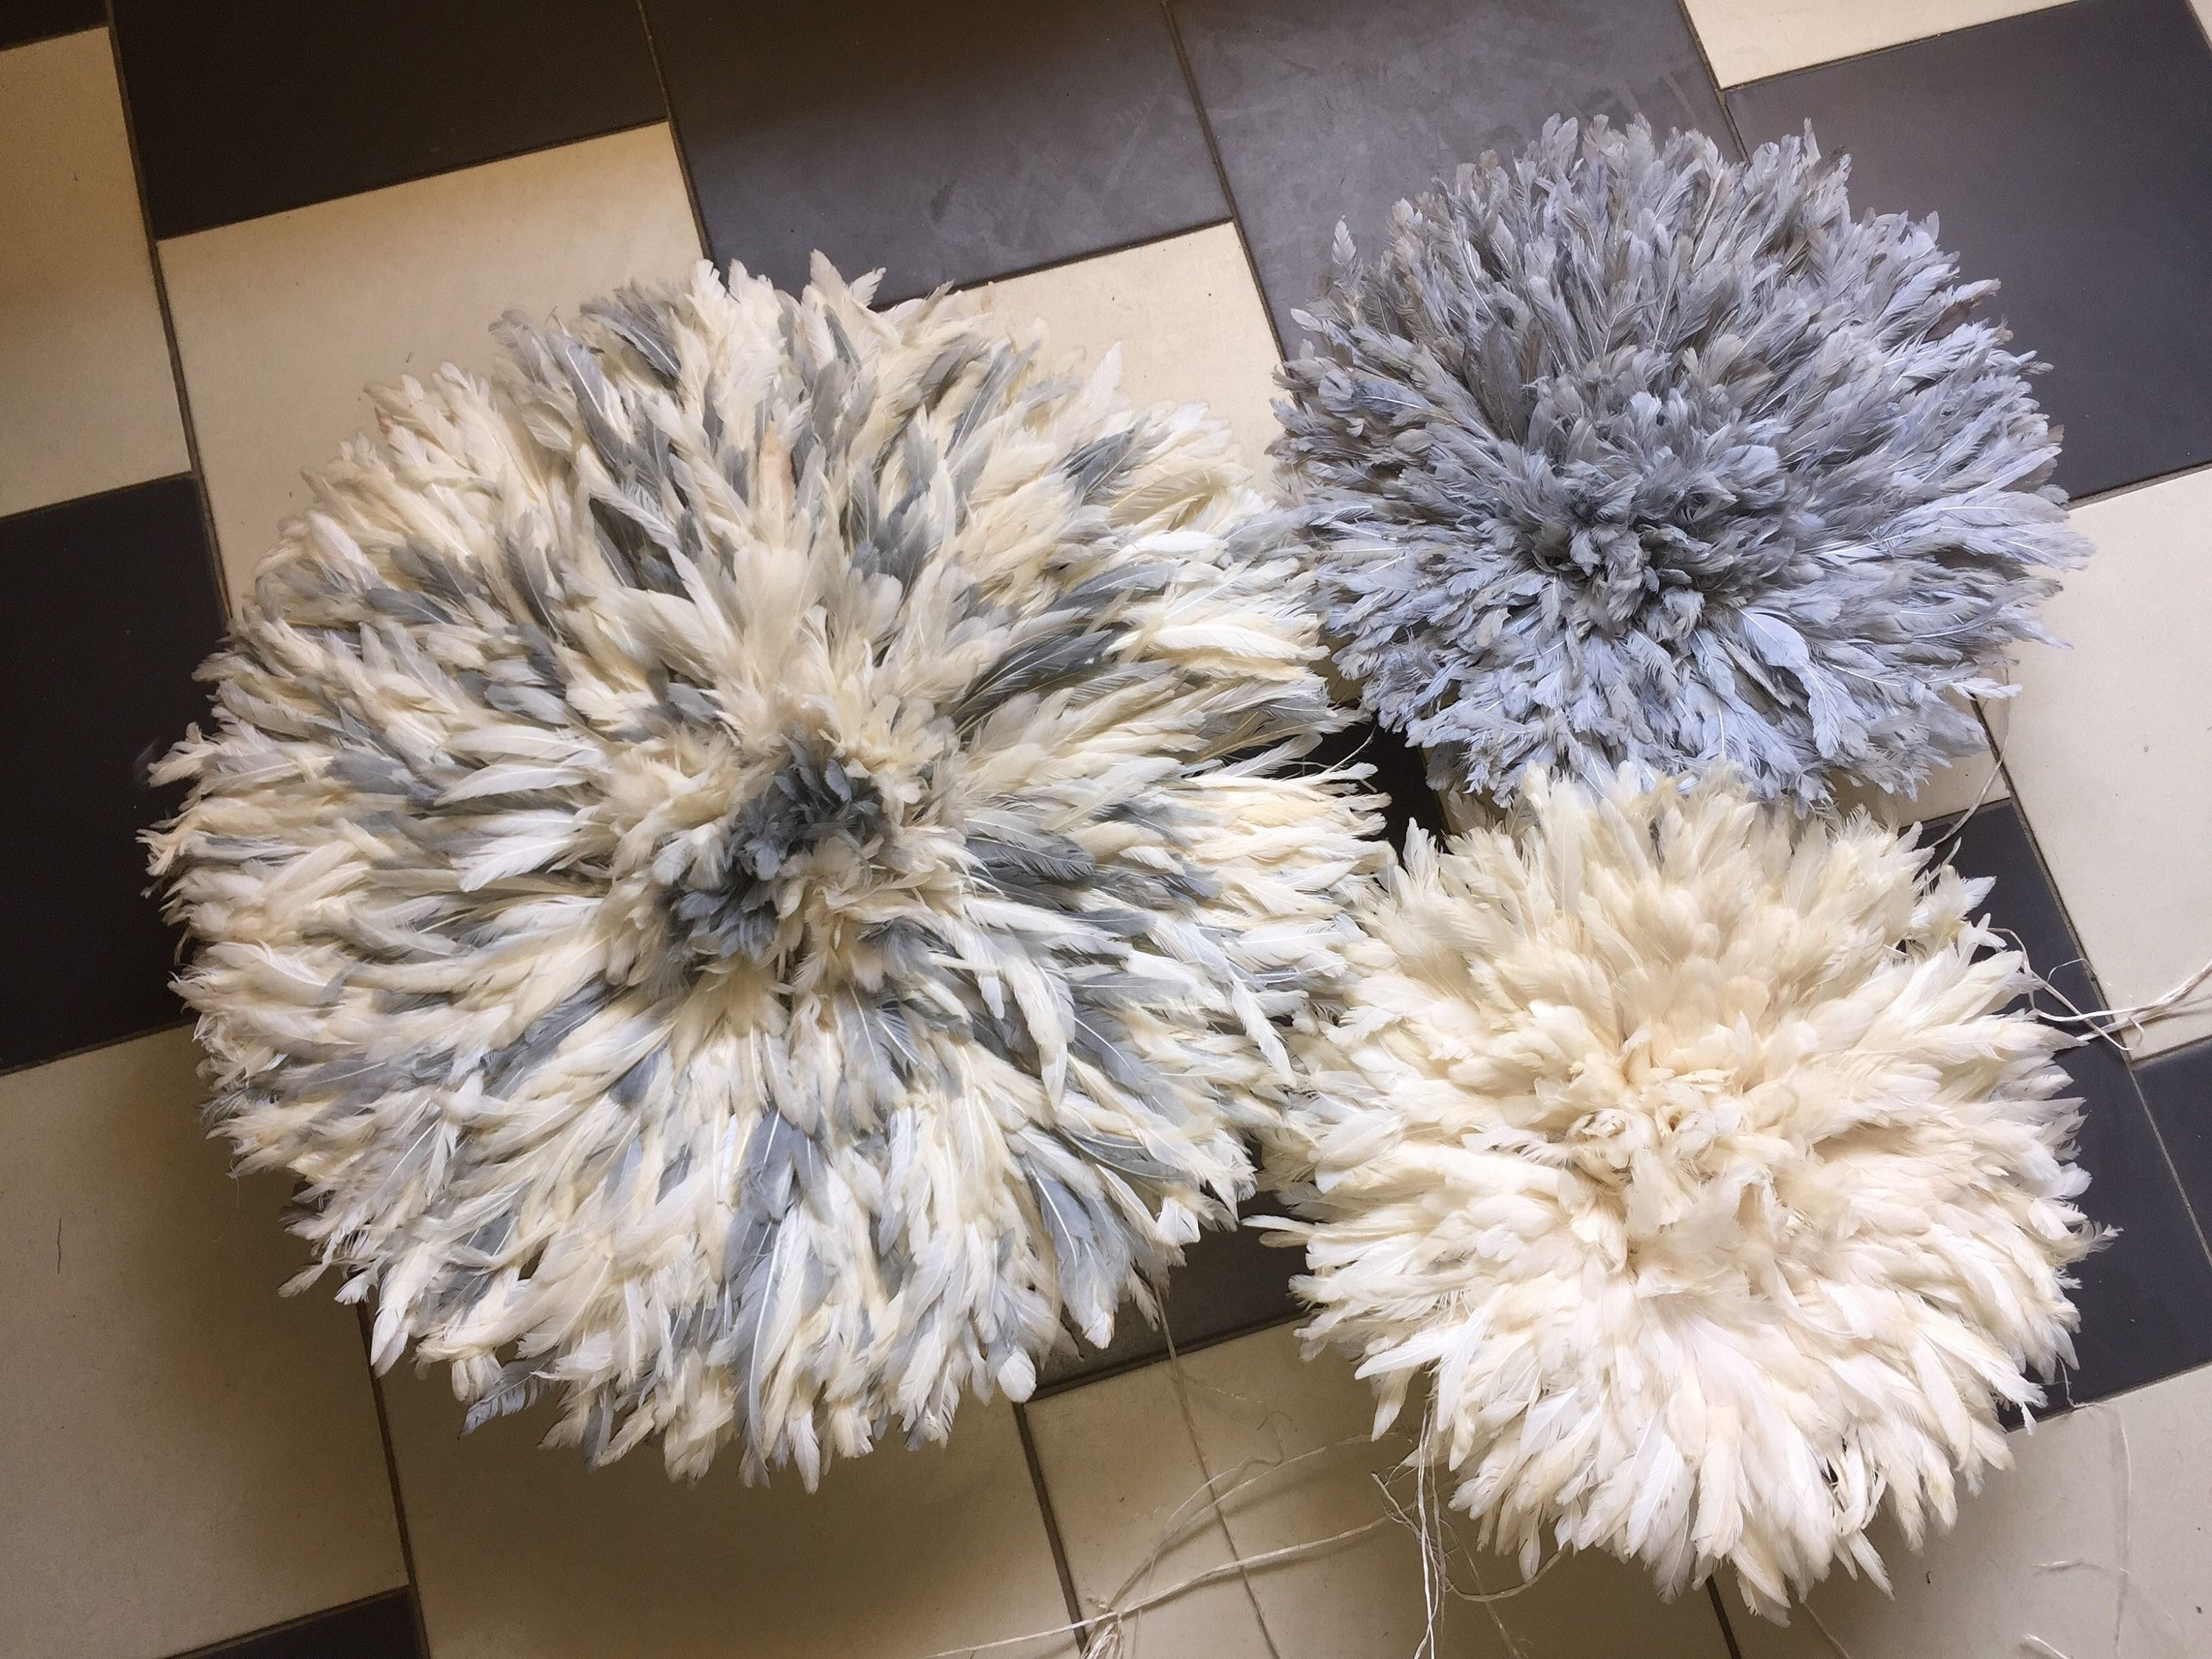 Set Of 3 Juju Hats To Beautify Your Home 1x60cm 2x40cm At Etsy Juju Hat Feather Headdress Juju